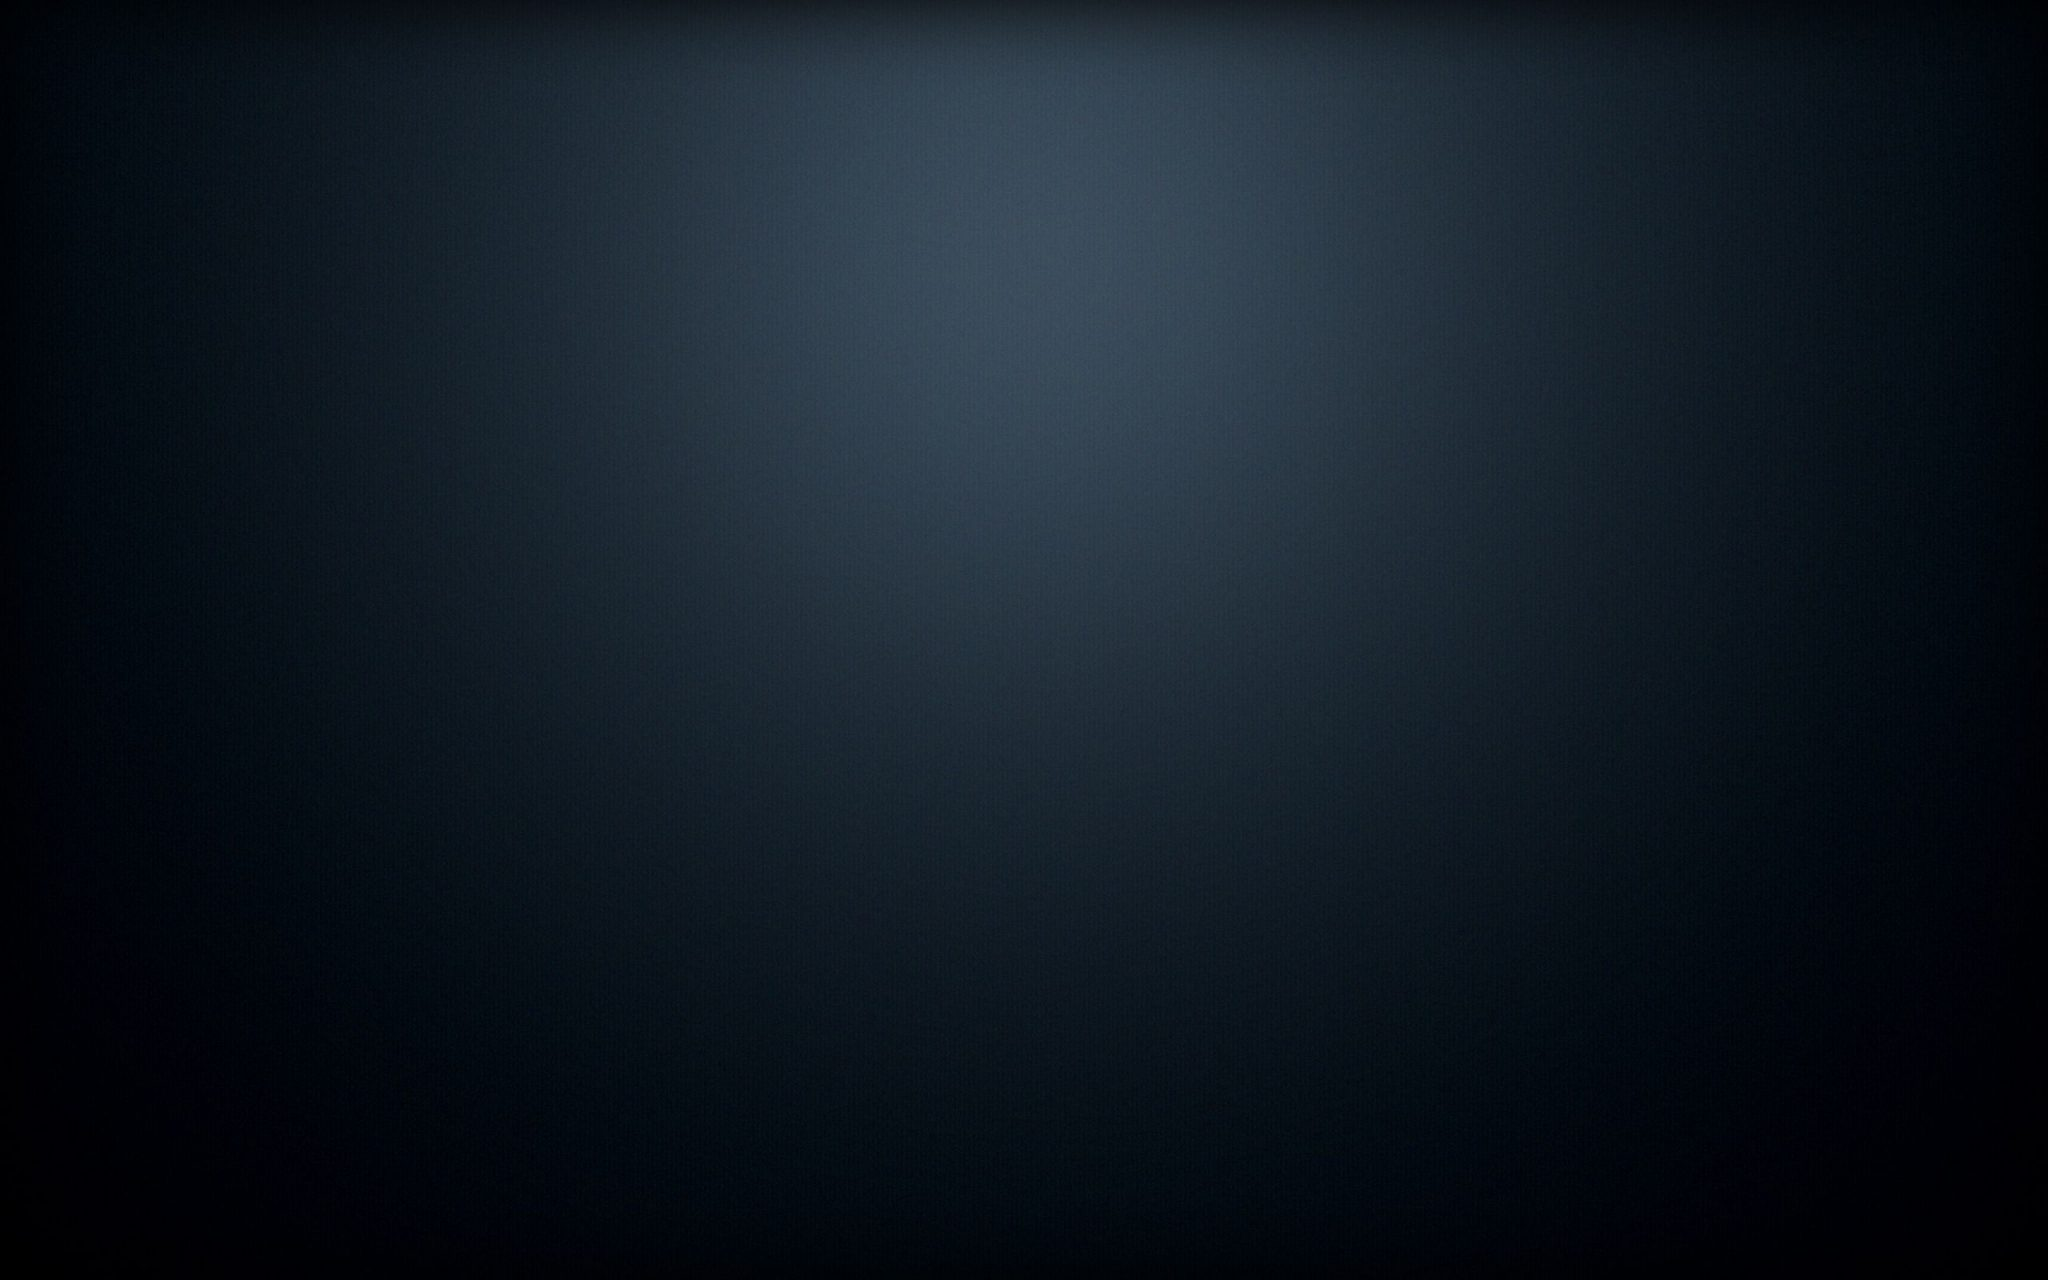 dark-texture-wallpaper-016